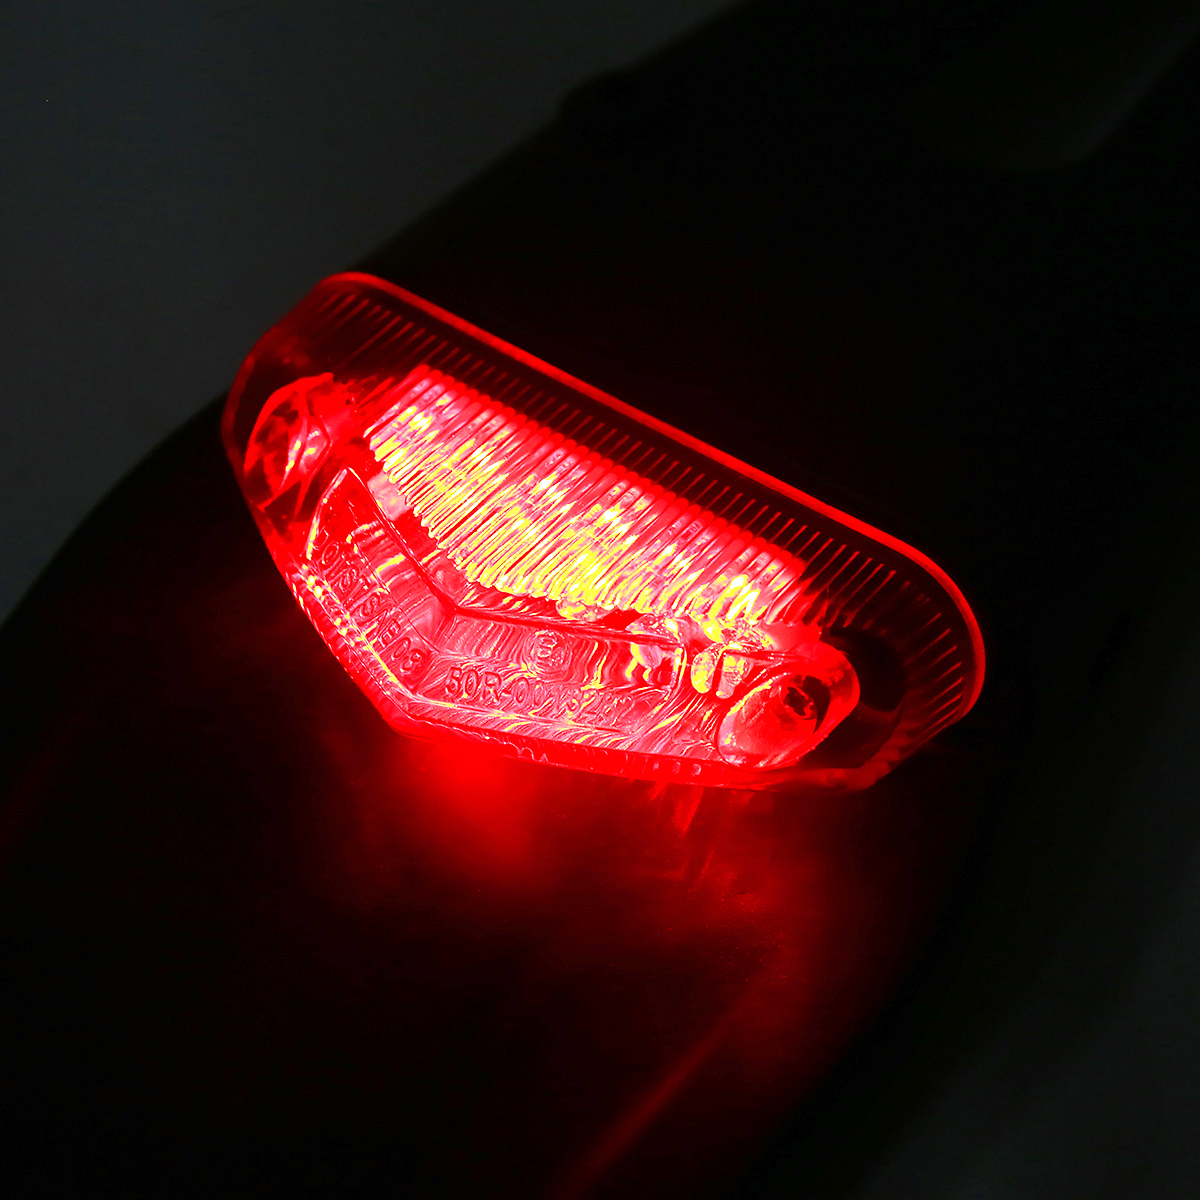 Image 5 - 1PC Motorcycle Off road Rear Fender LED Stop Tail Light For Enduro Trials Trailbikes XR400 For Yamaha WR250/ 450 TTR250 TT600 RE